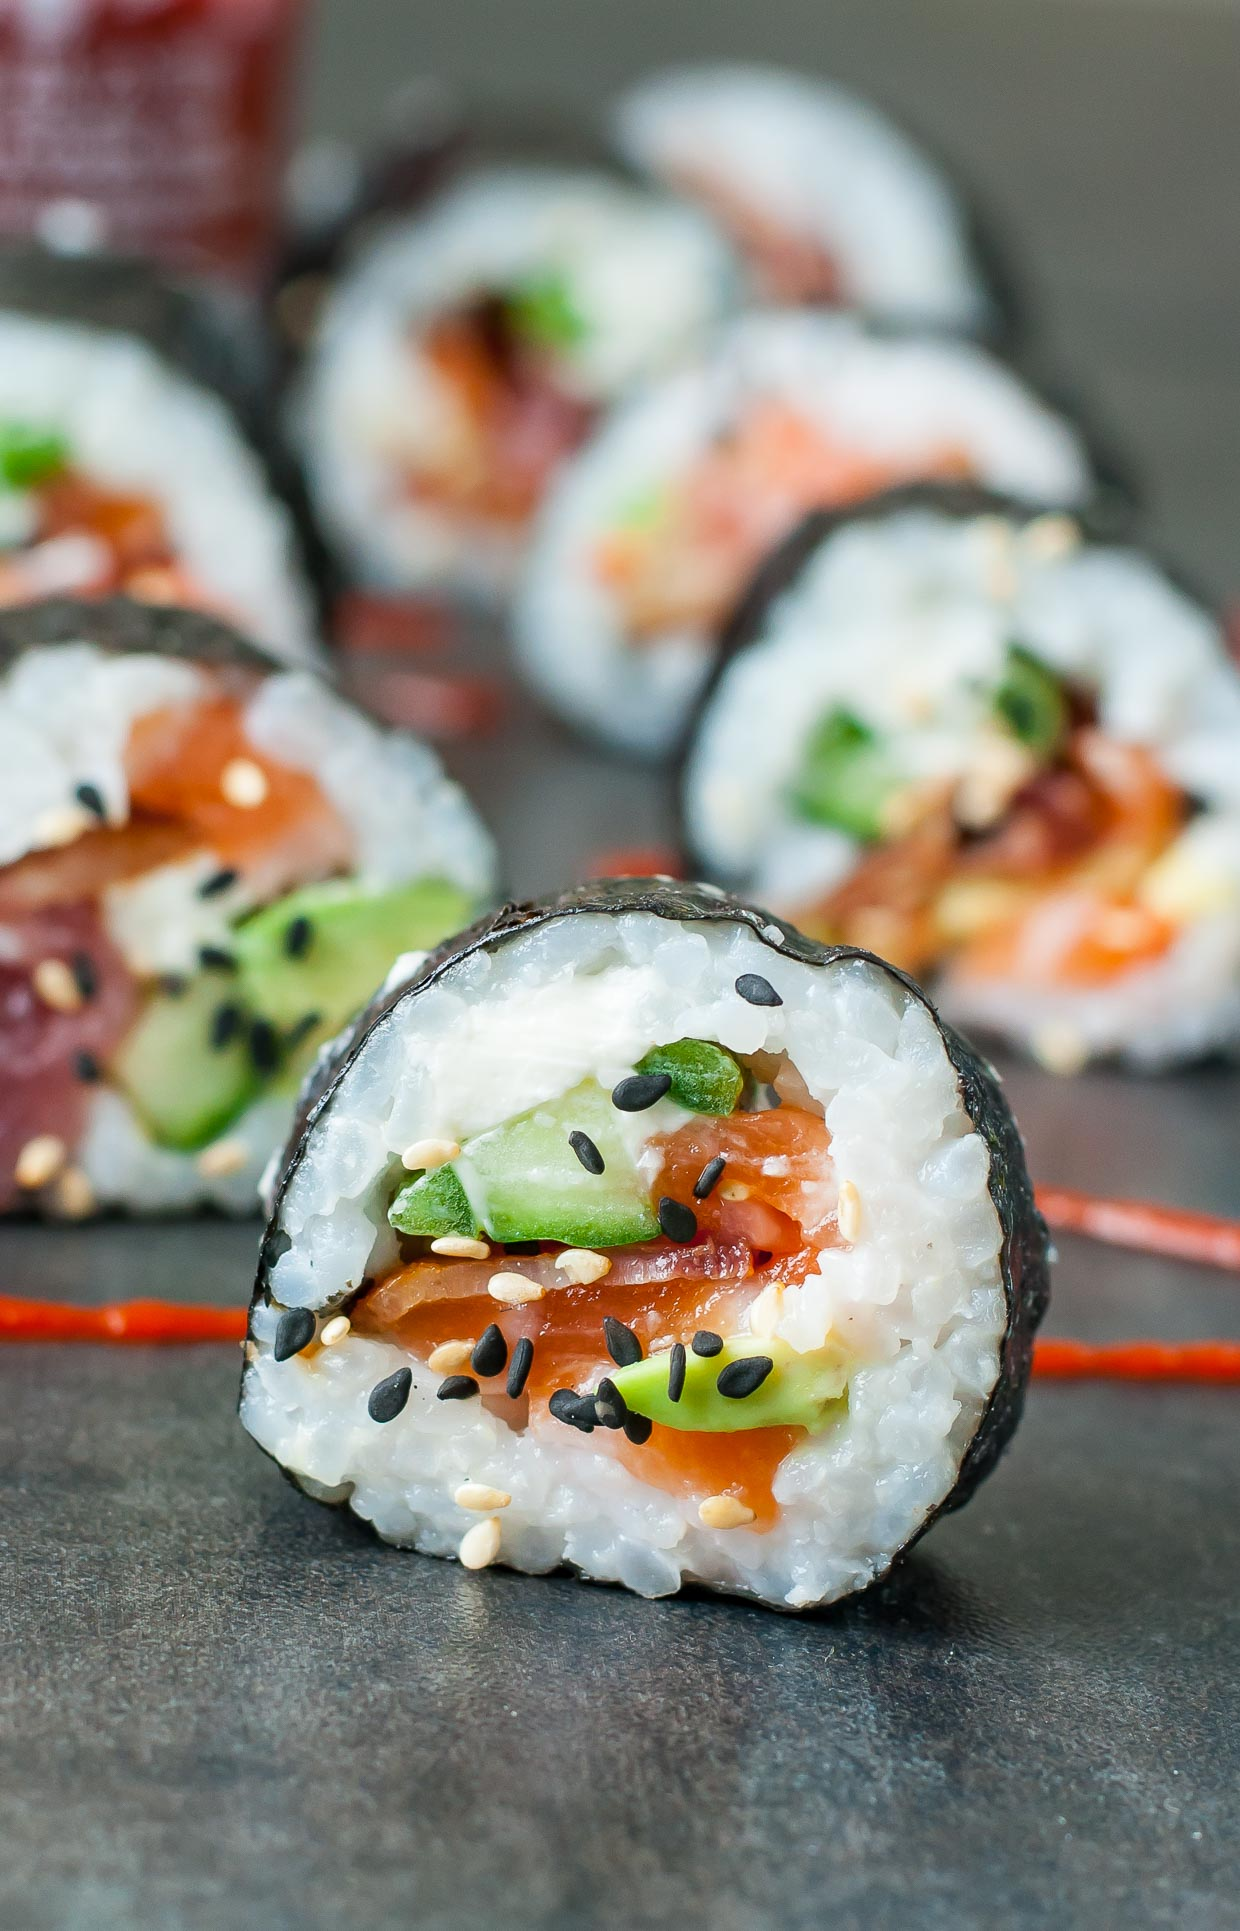 Homemade Sushi ,, These Bacon Avocado Sushi Rolls are a bit unconventional  but SO INSANELY